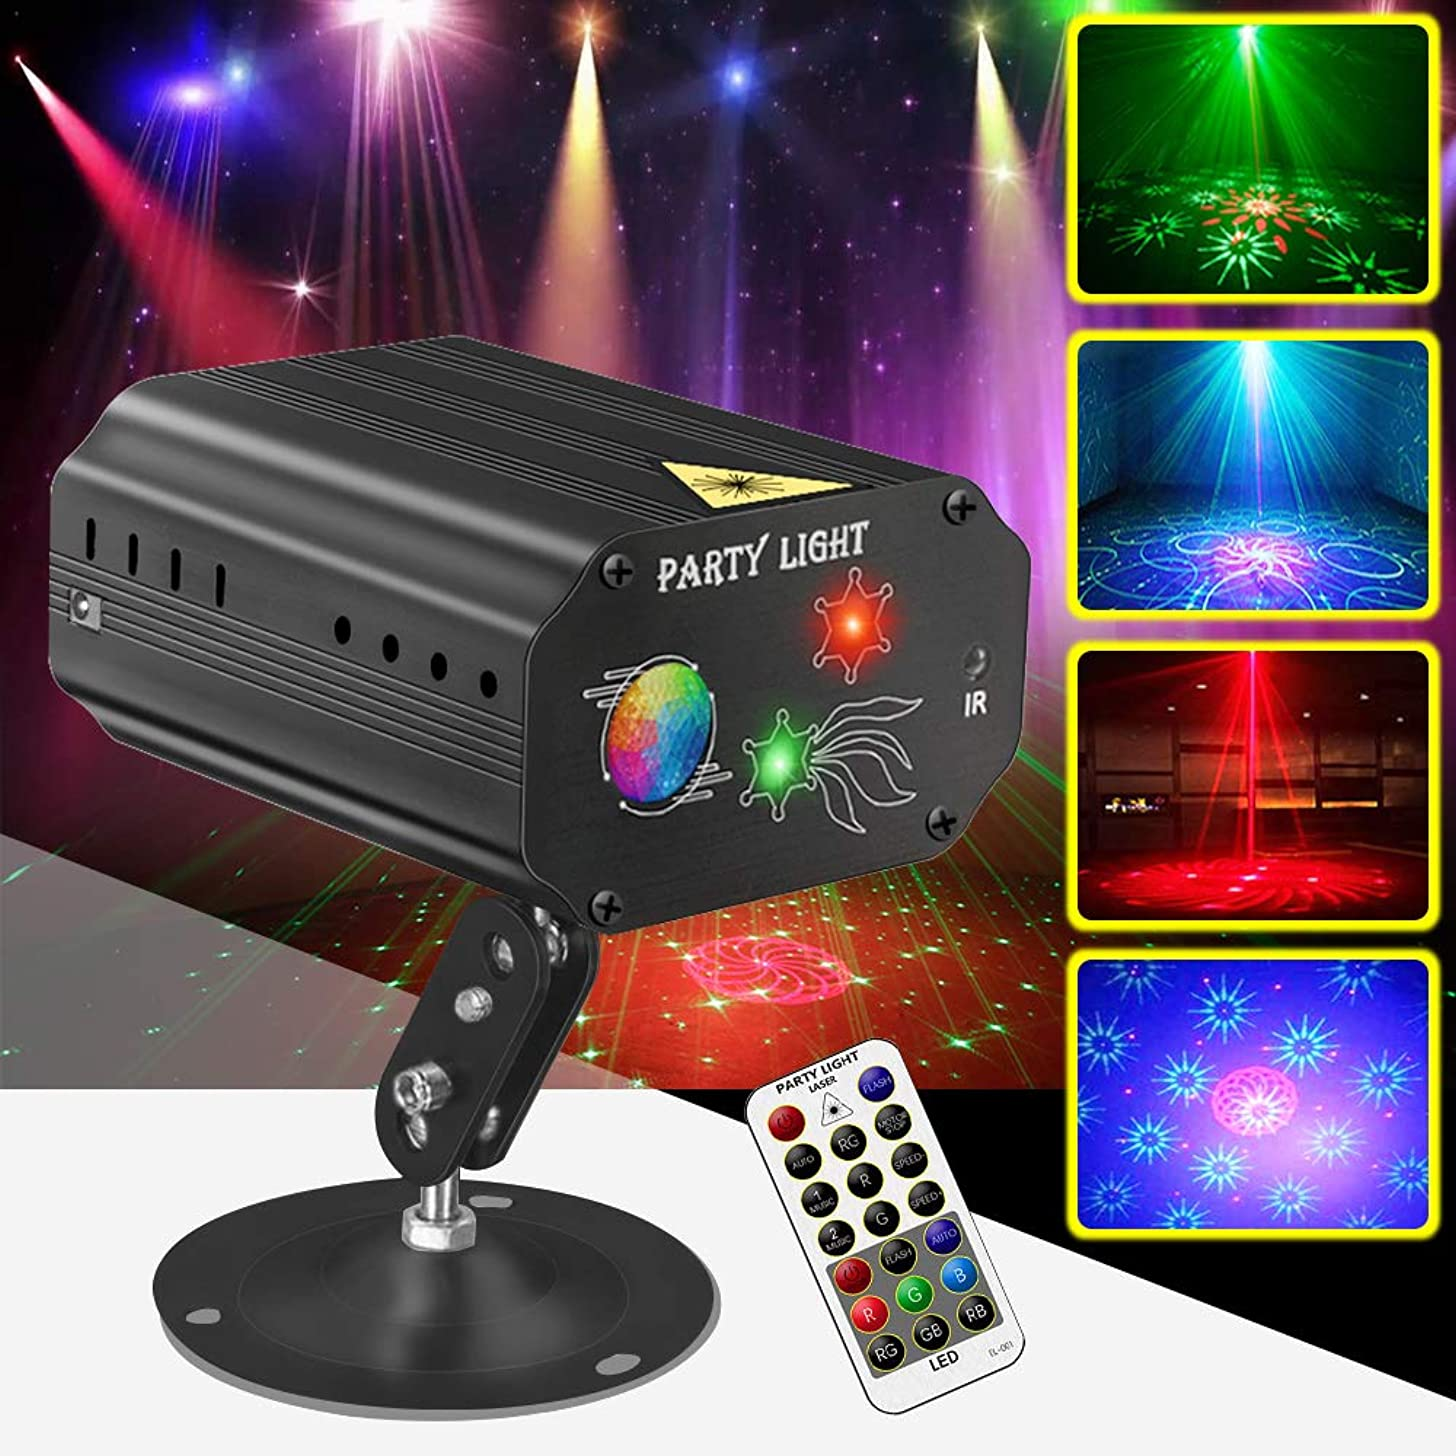 Party Lights Disco Ball Lights Strobe Dj Stage Light QinGers Sound Activated Multiple Patterns Projector with Remote Control for Parties Bar Birthday Wedding Holiday Event Live